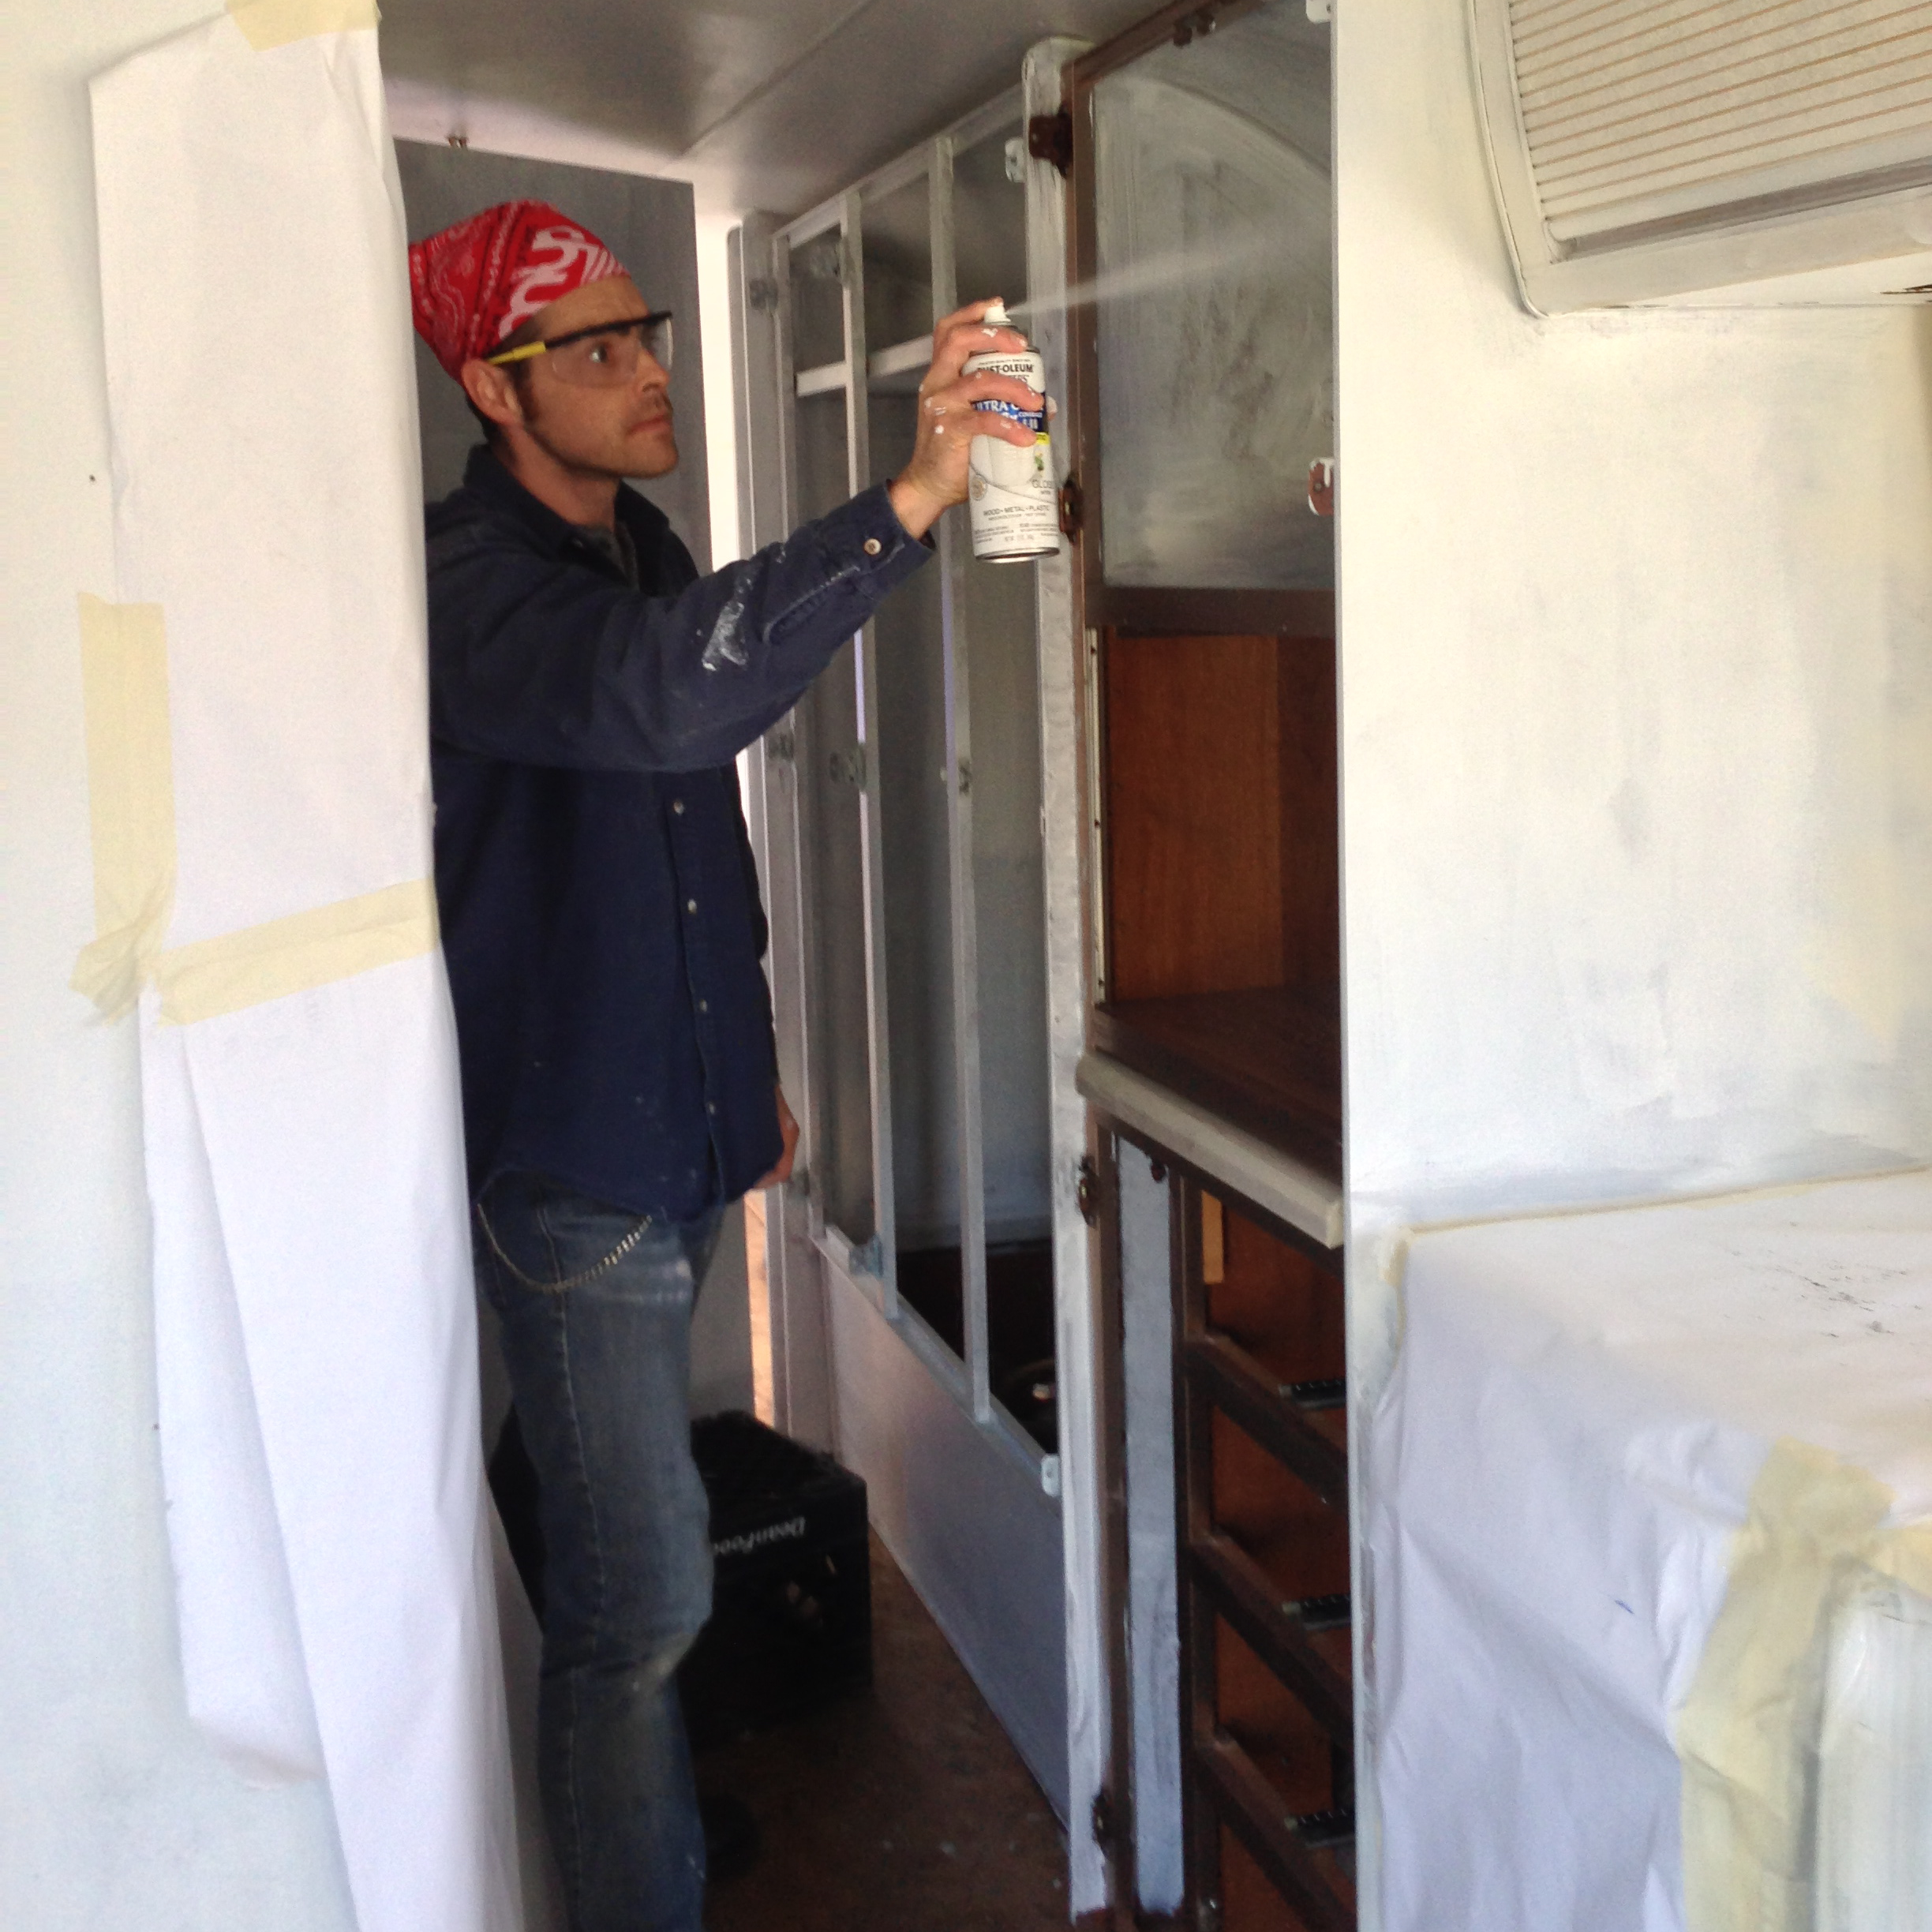 Michael trimming the interior of cabinets with spray paint.